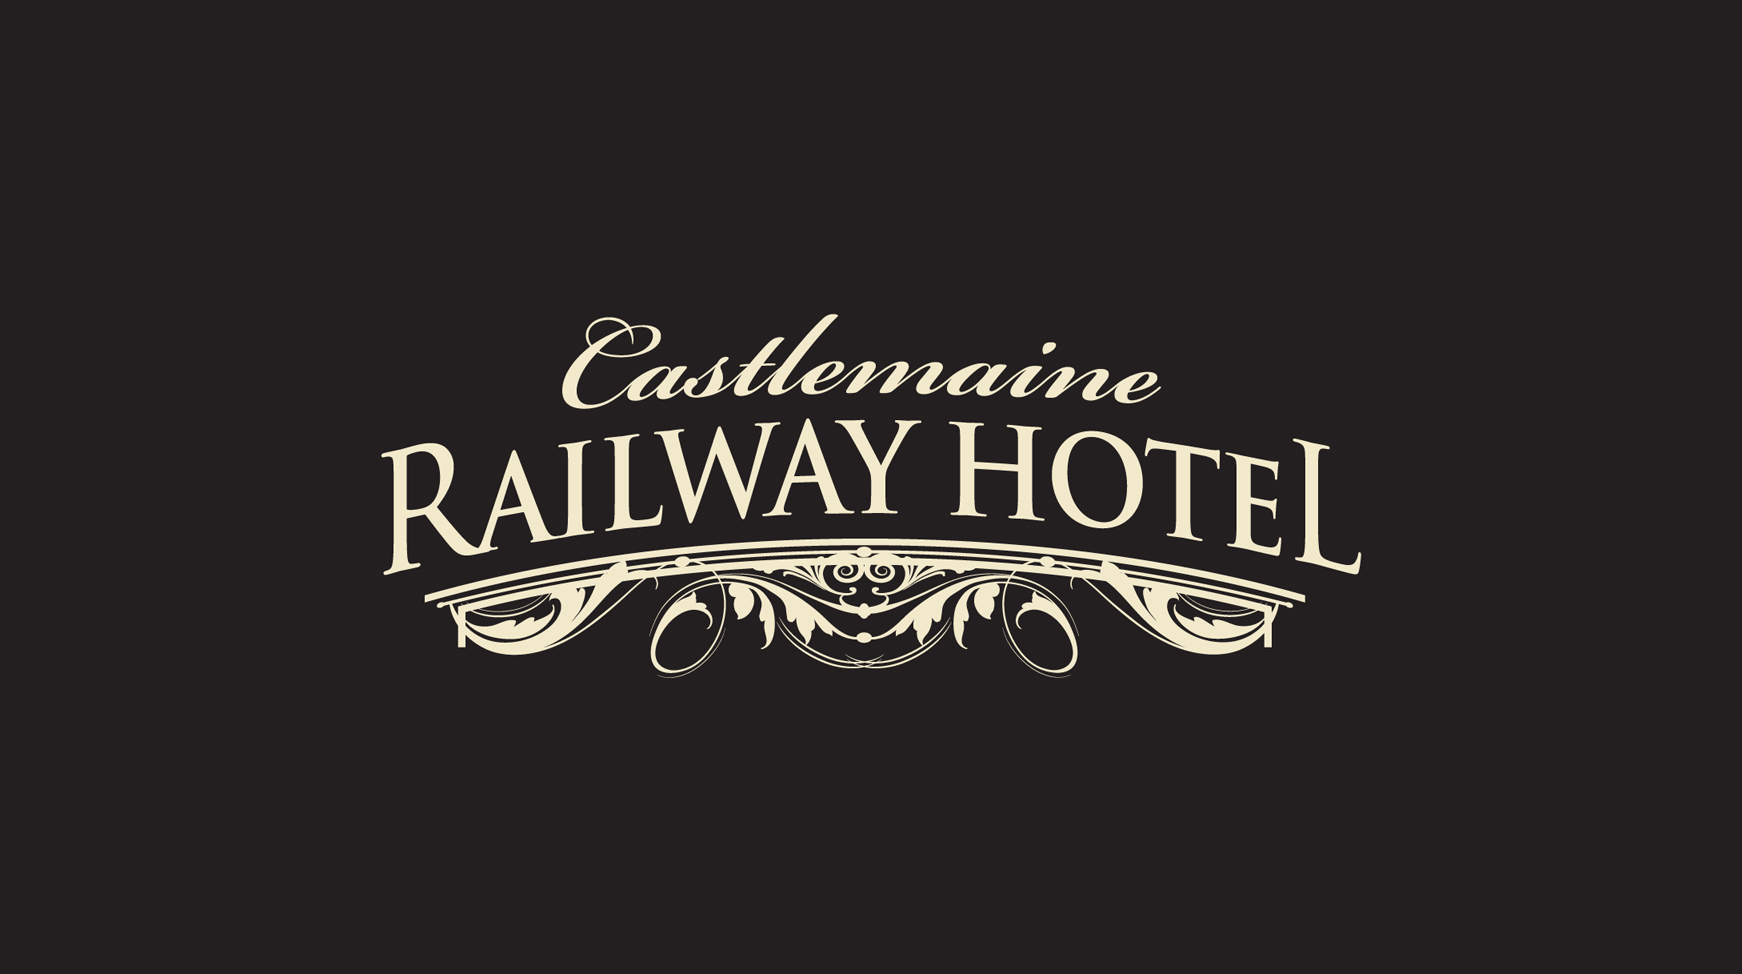 Railway Hotel Castlemaine - Accommodation Cooktown